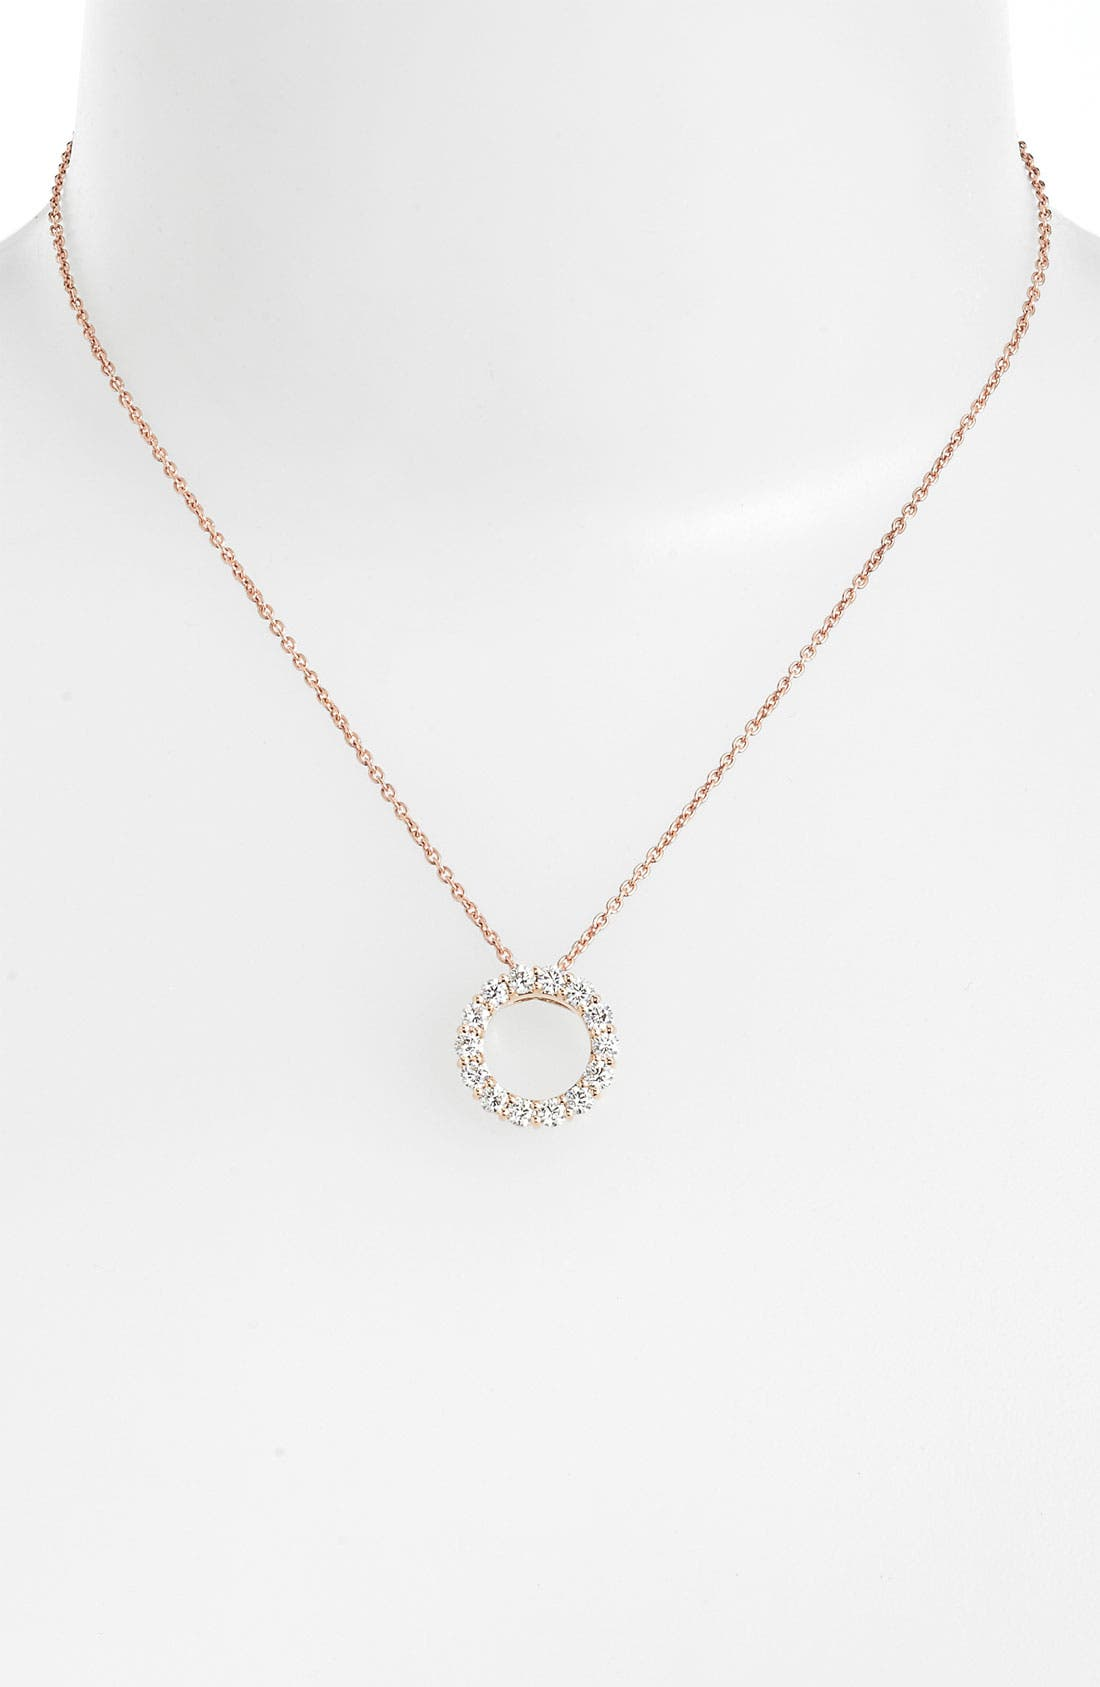 Alternate Image 1 Selected - Roberto Coin 'Tiny Treasures - Circle of Life' Diamond Necklace